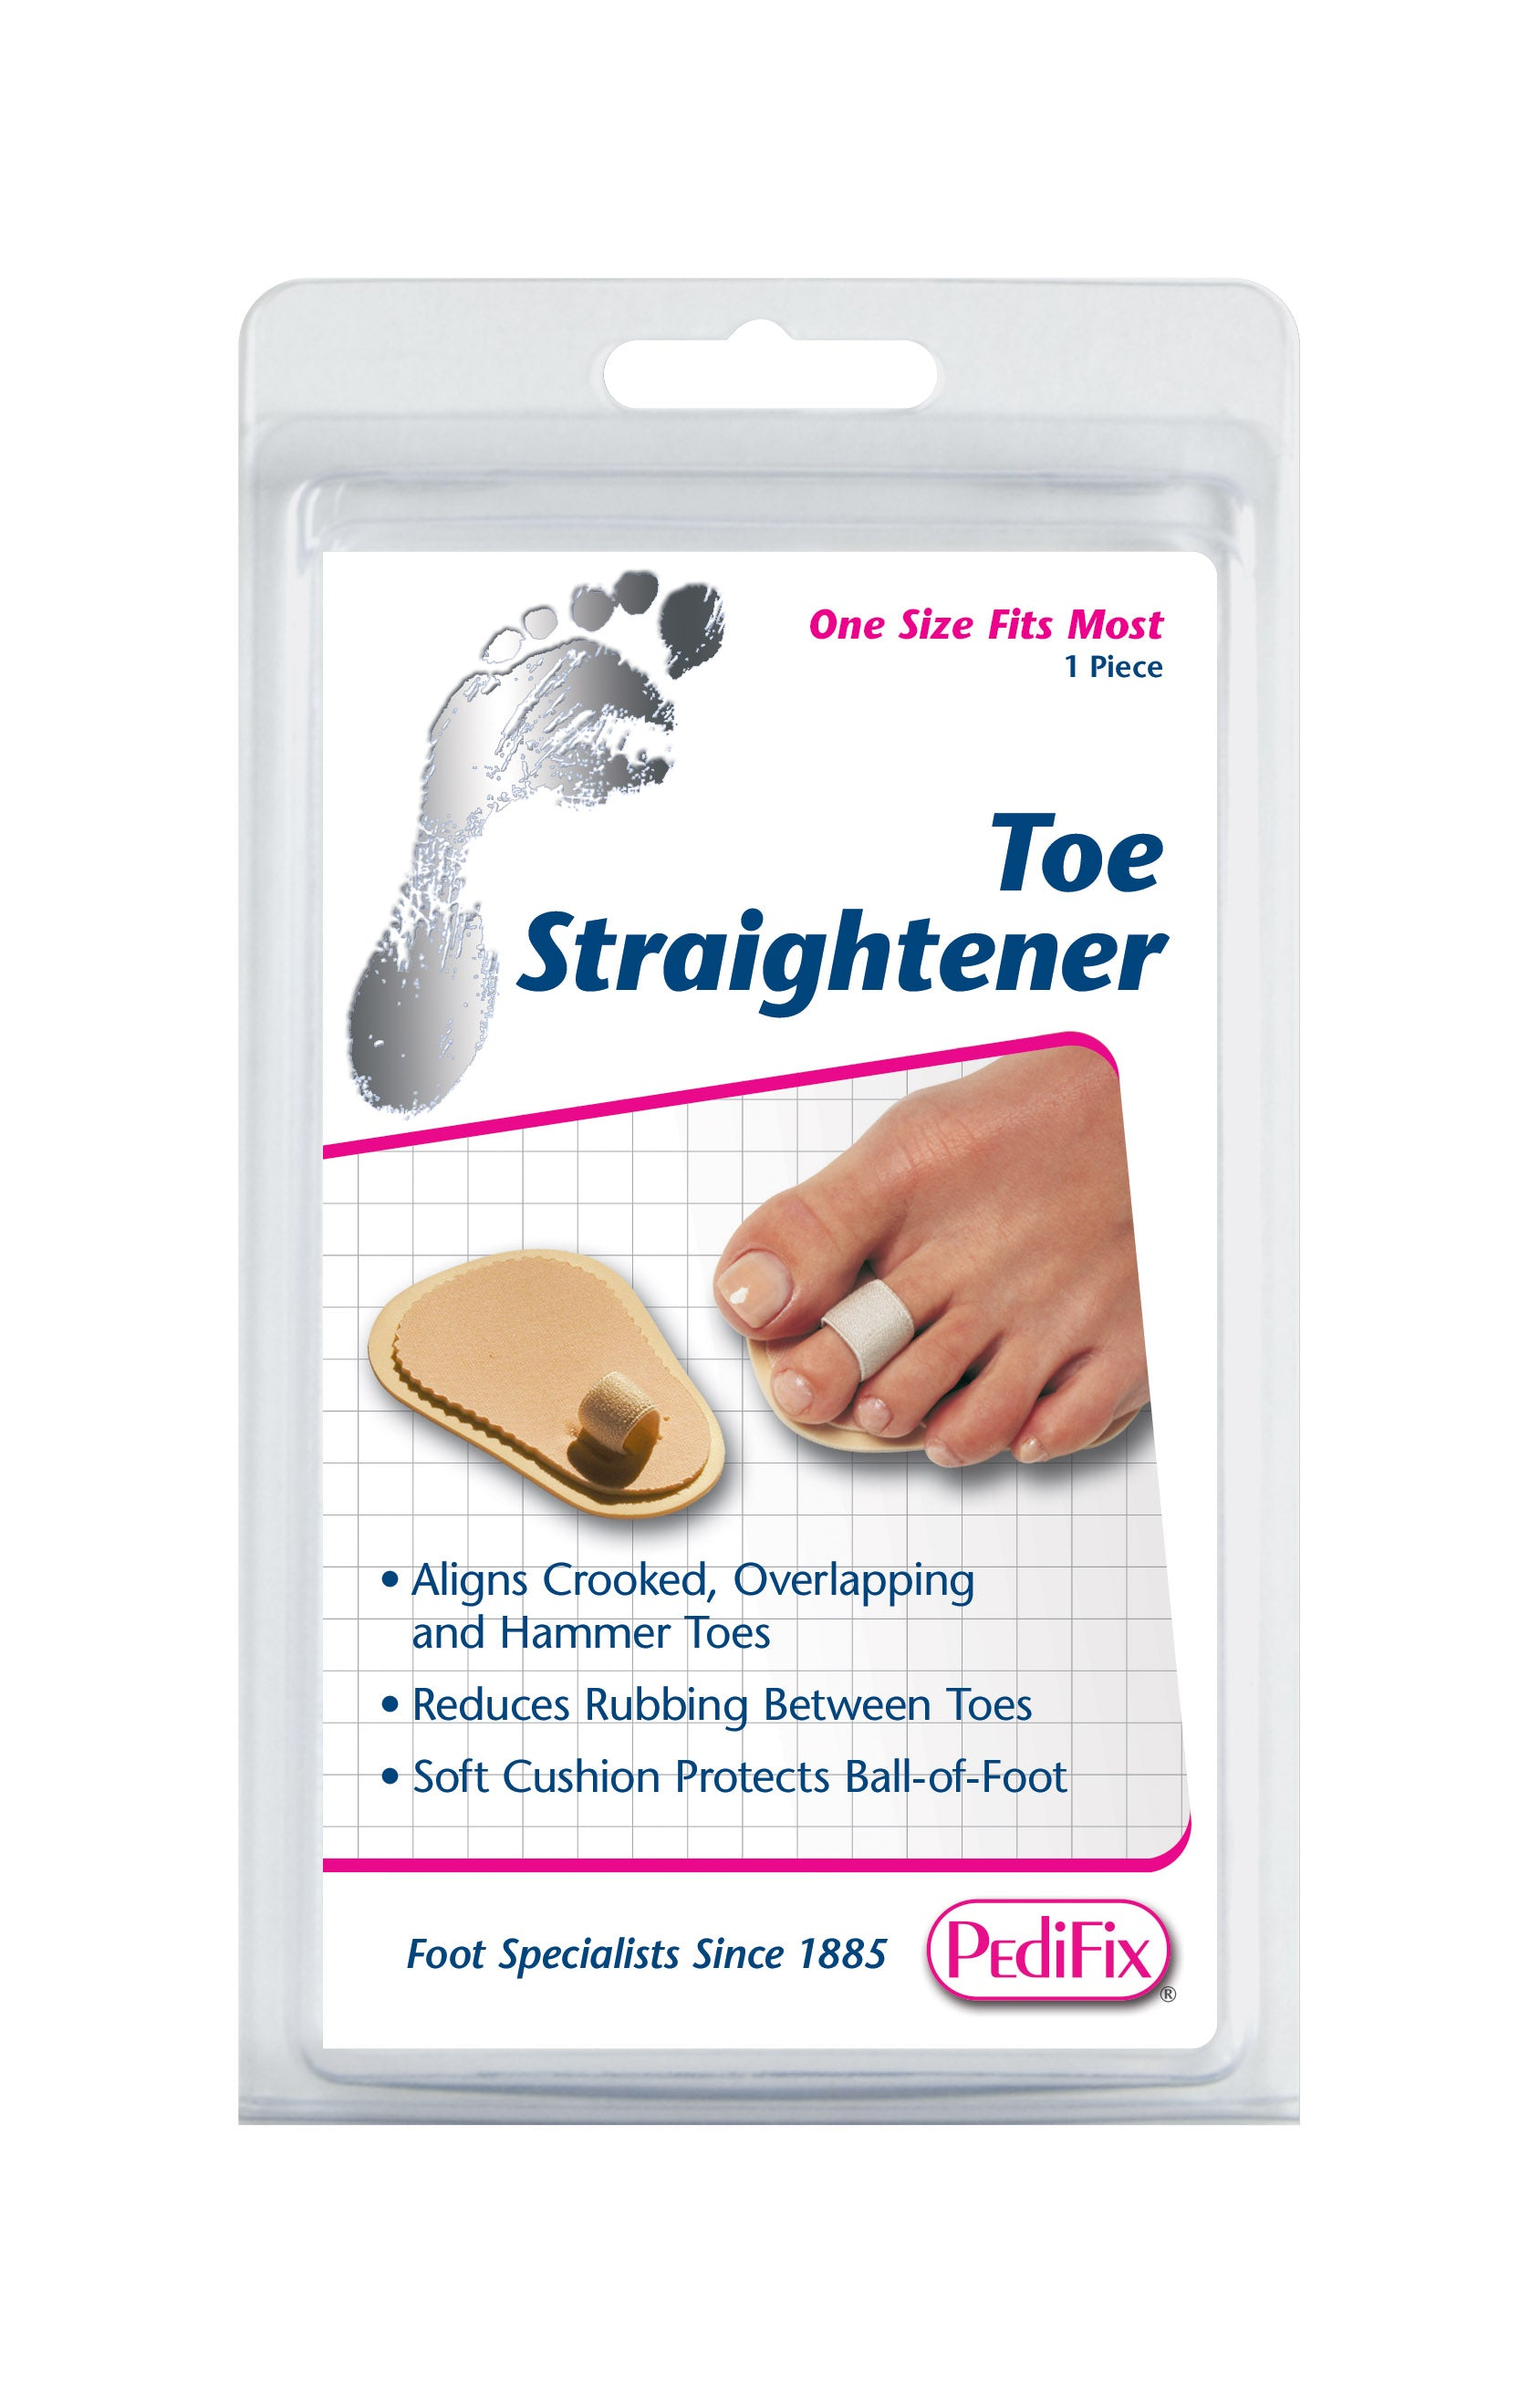 PediFix Pedi-smart Toe Straightener/Toe trainer/Budin Splint for One, Two or Three Toes